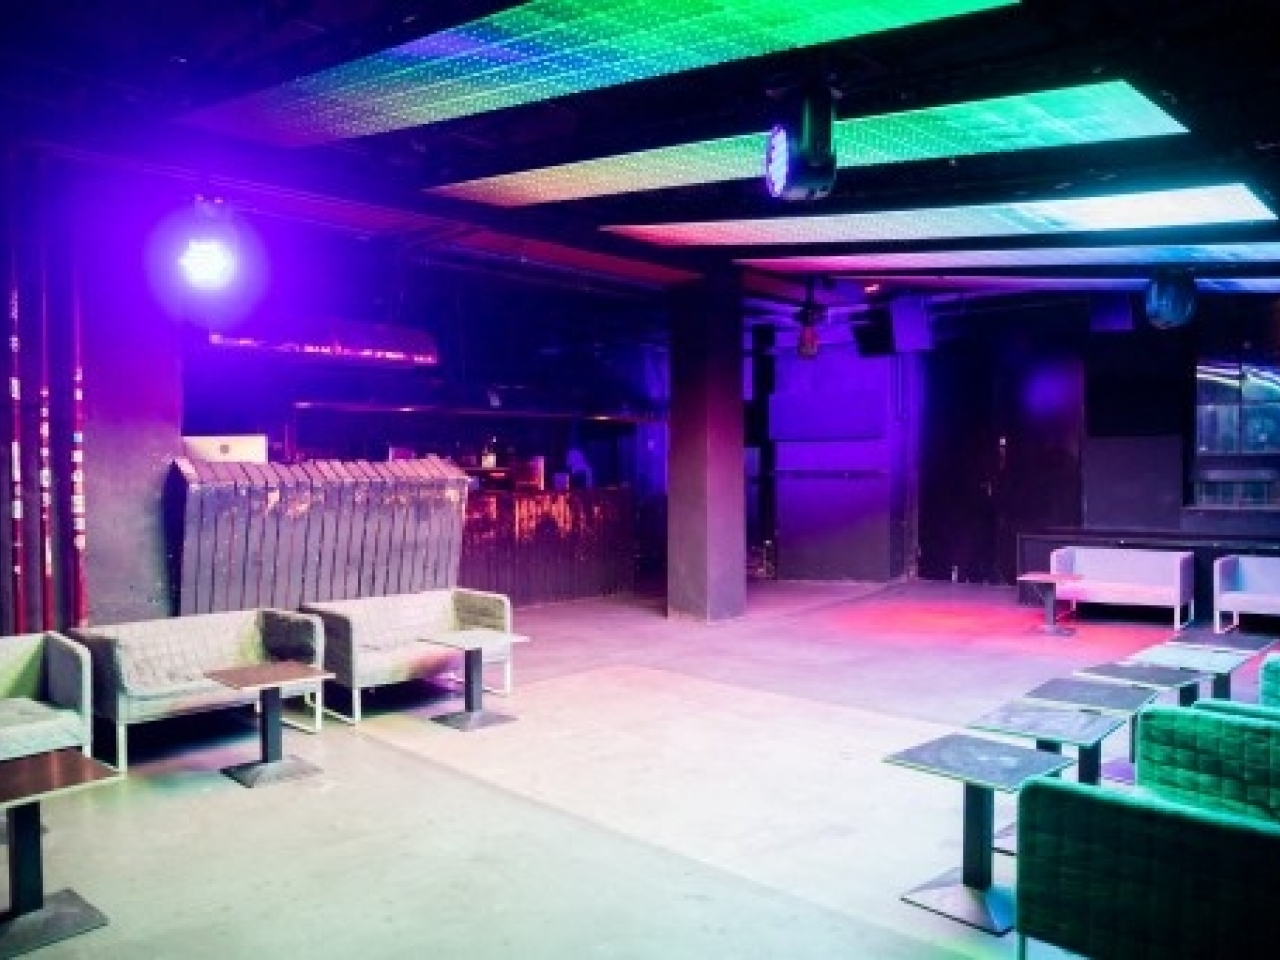 Ritter Butzke, a Berling nightclub, is preparing to reopen after Covid rules were eased. Photo: AFP